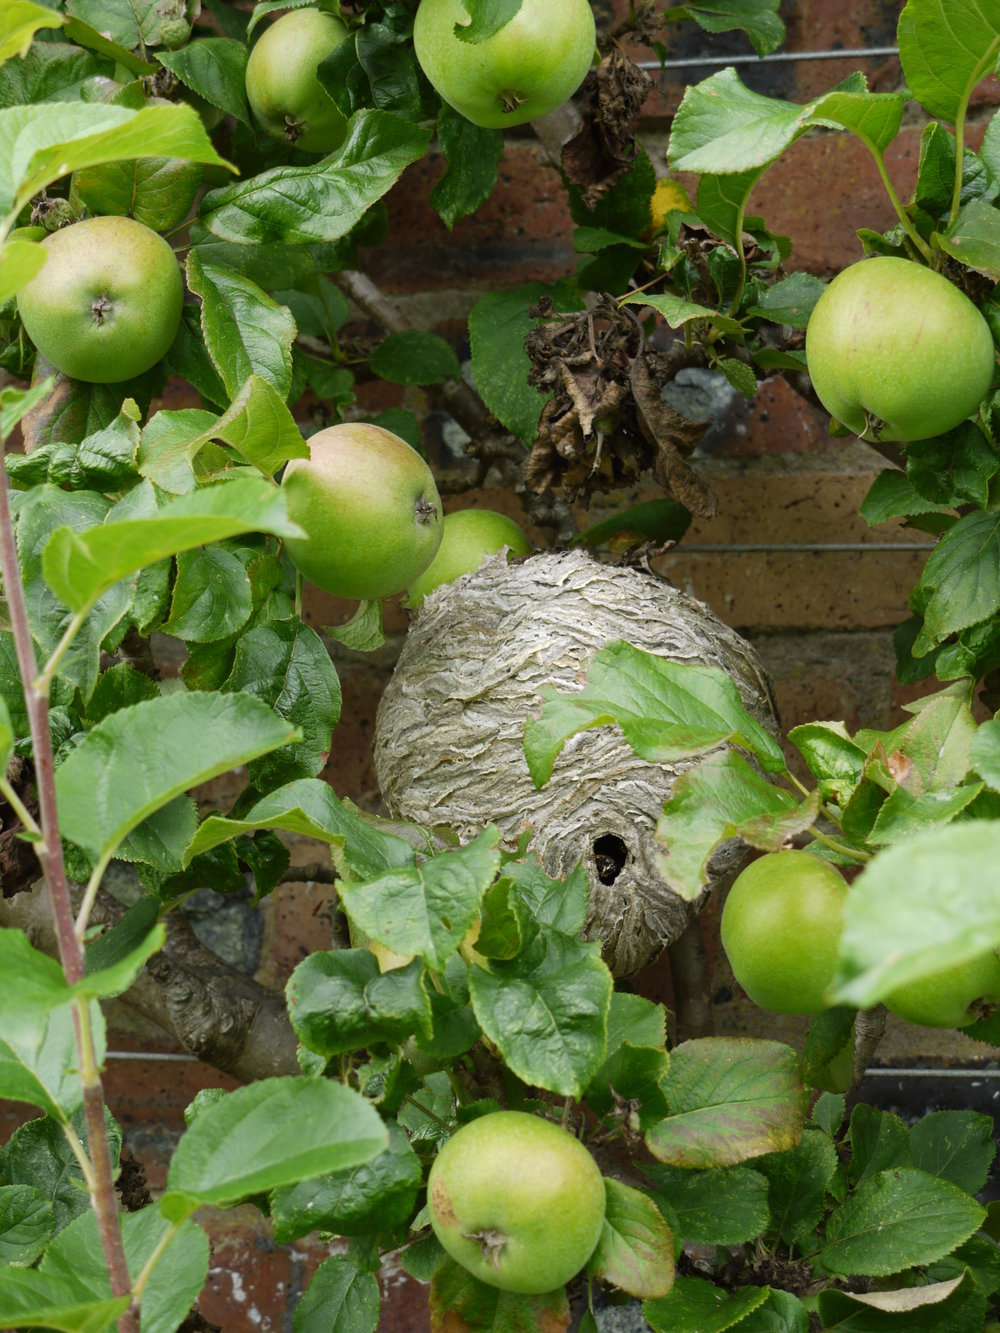 Fresh Scottish Apples & Wasp nest.